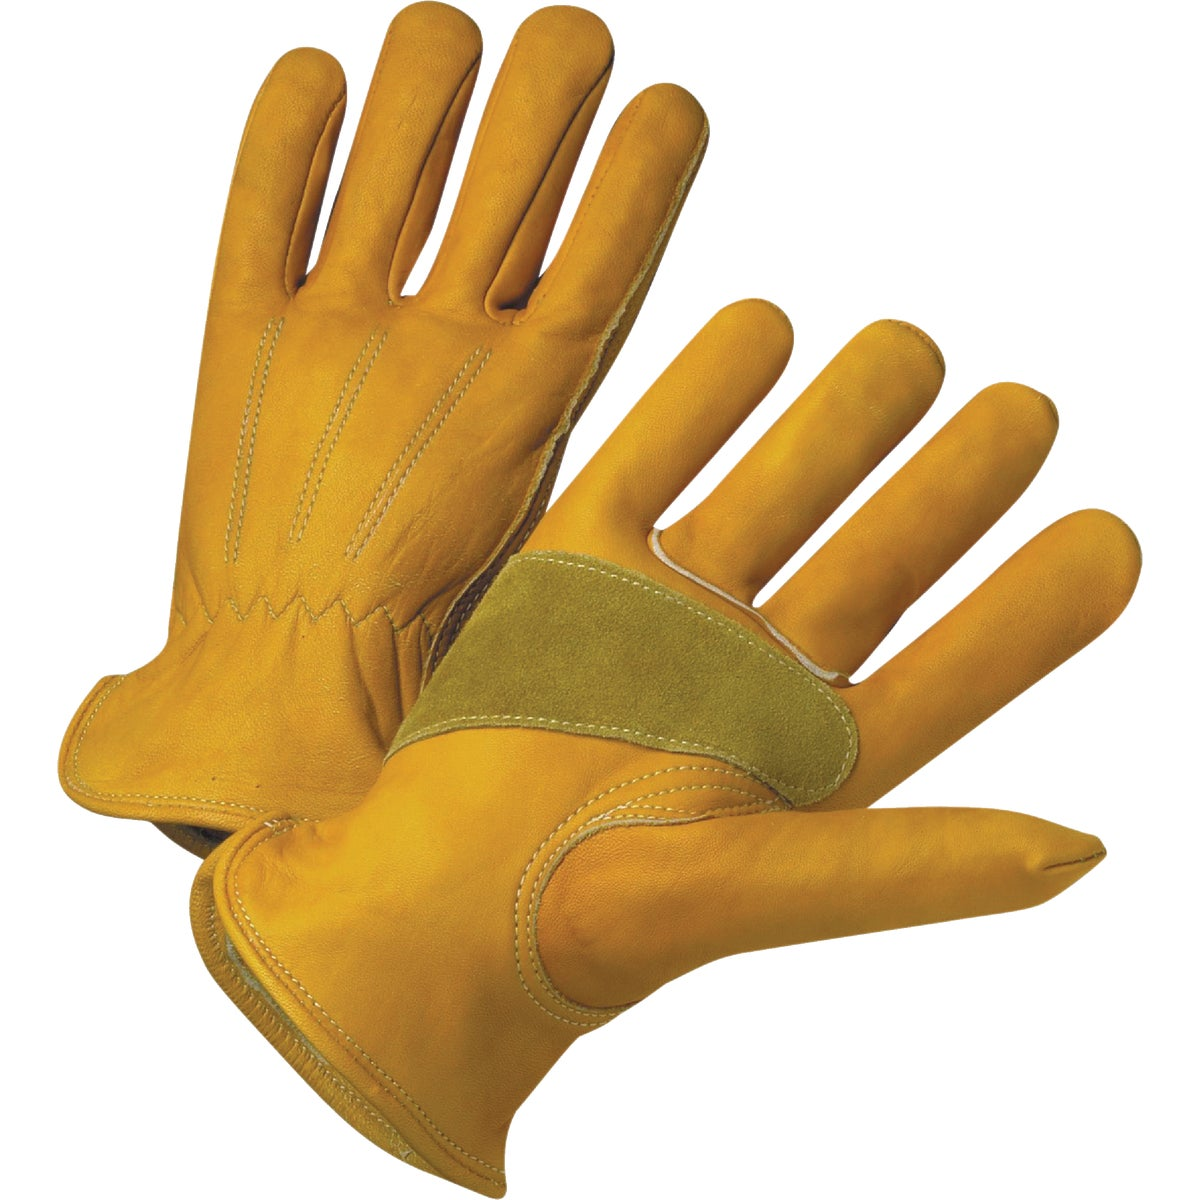 XXL GRAIN COWHIDE GLOVE - 1130XX by Wells Lamont